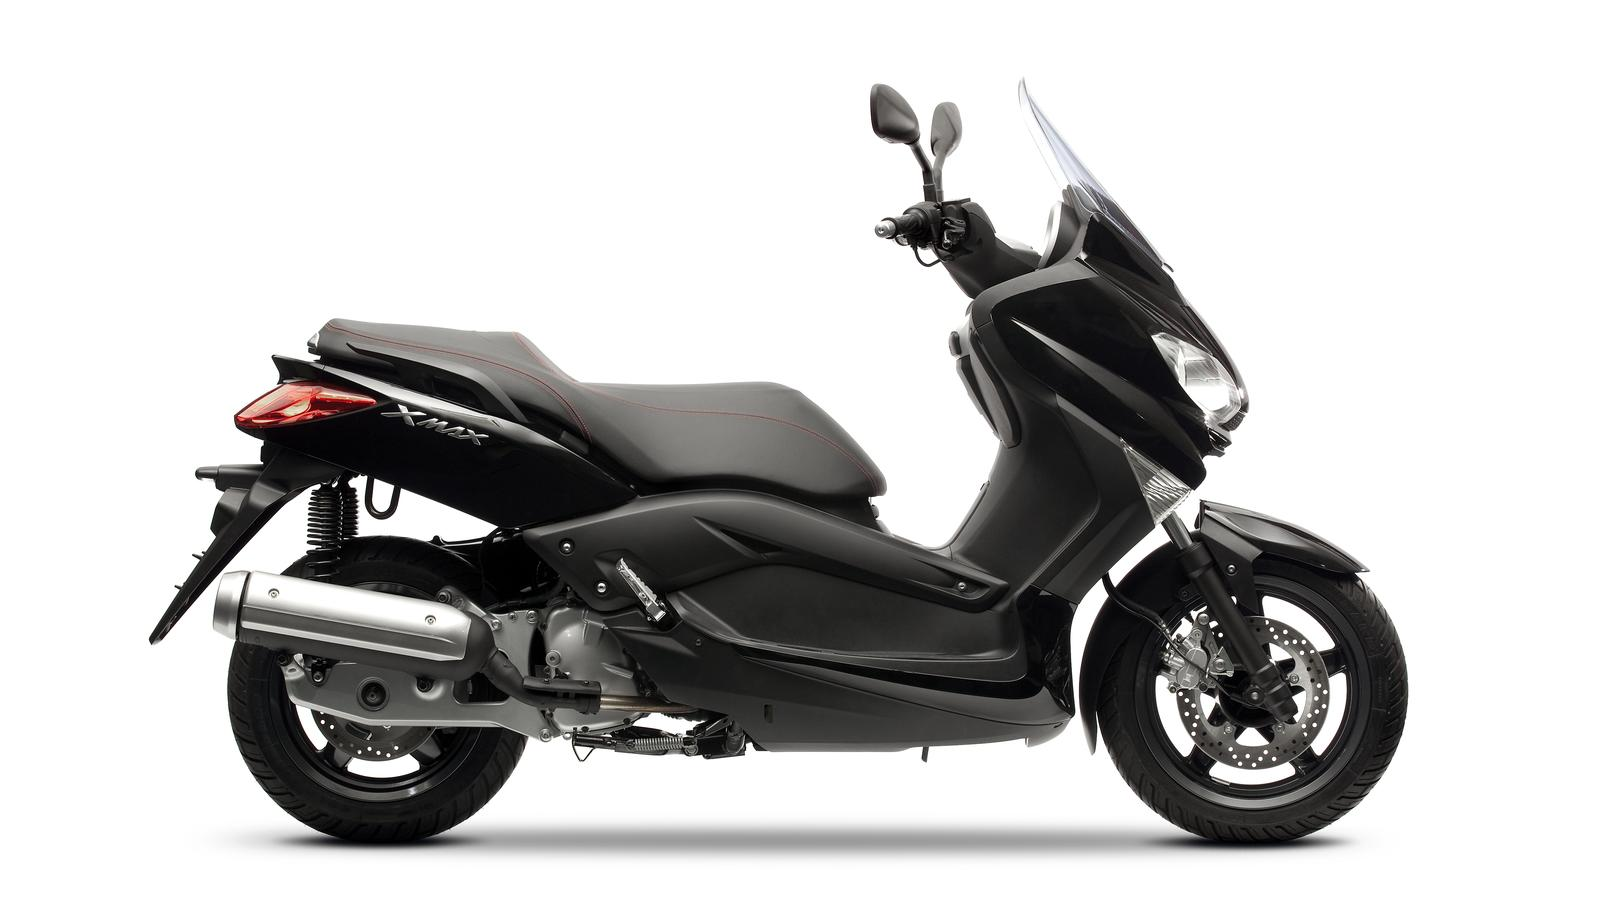 2011 Yamaha X-Max 125 ABS Business #4